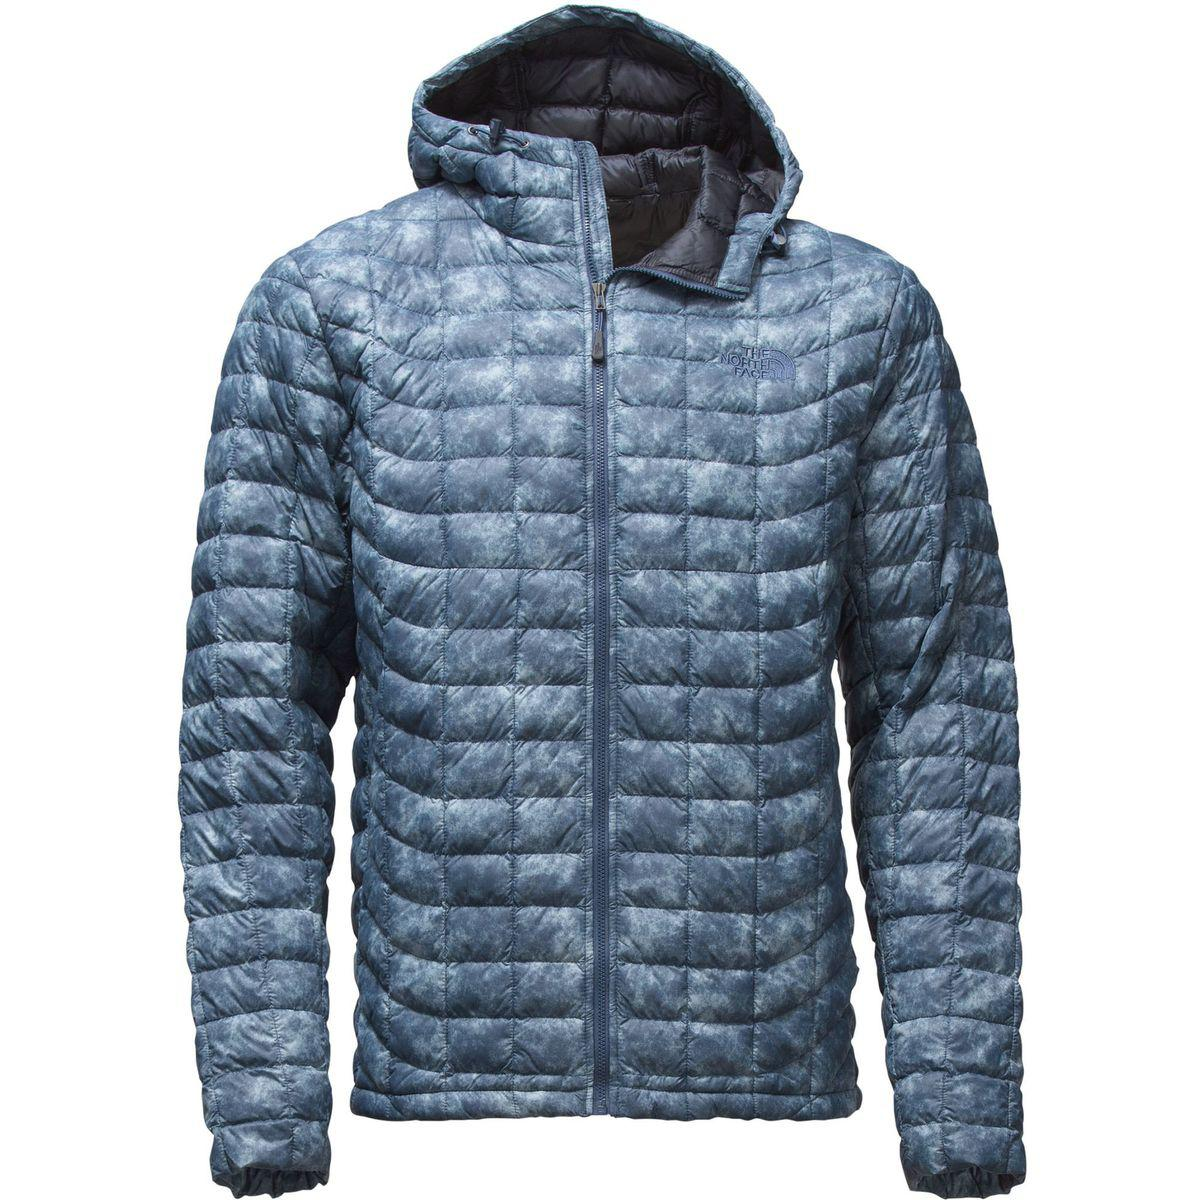 ac7ab558282c Lyst - The North Face Thermoball Hooded Insulated Jacket in Blue for Men